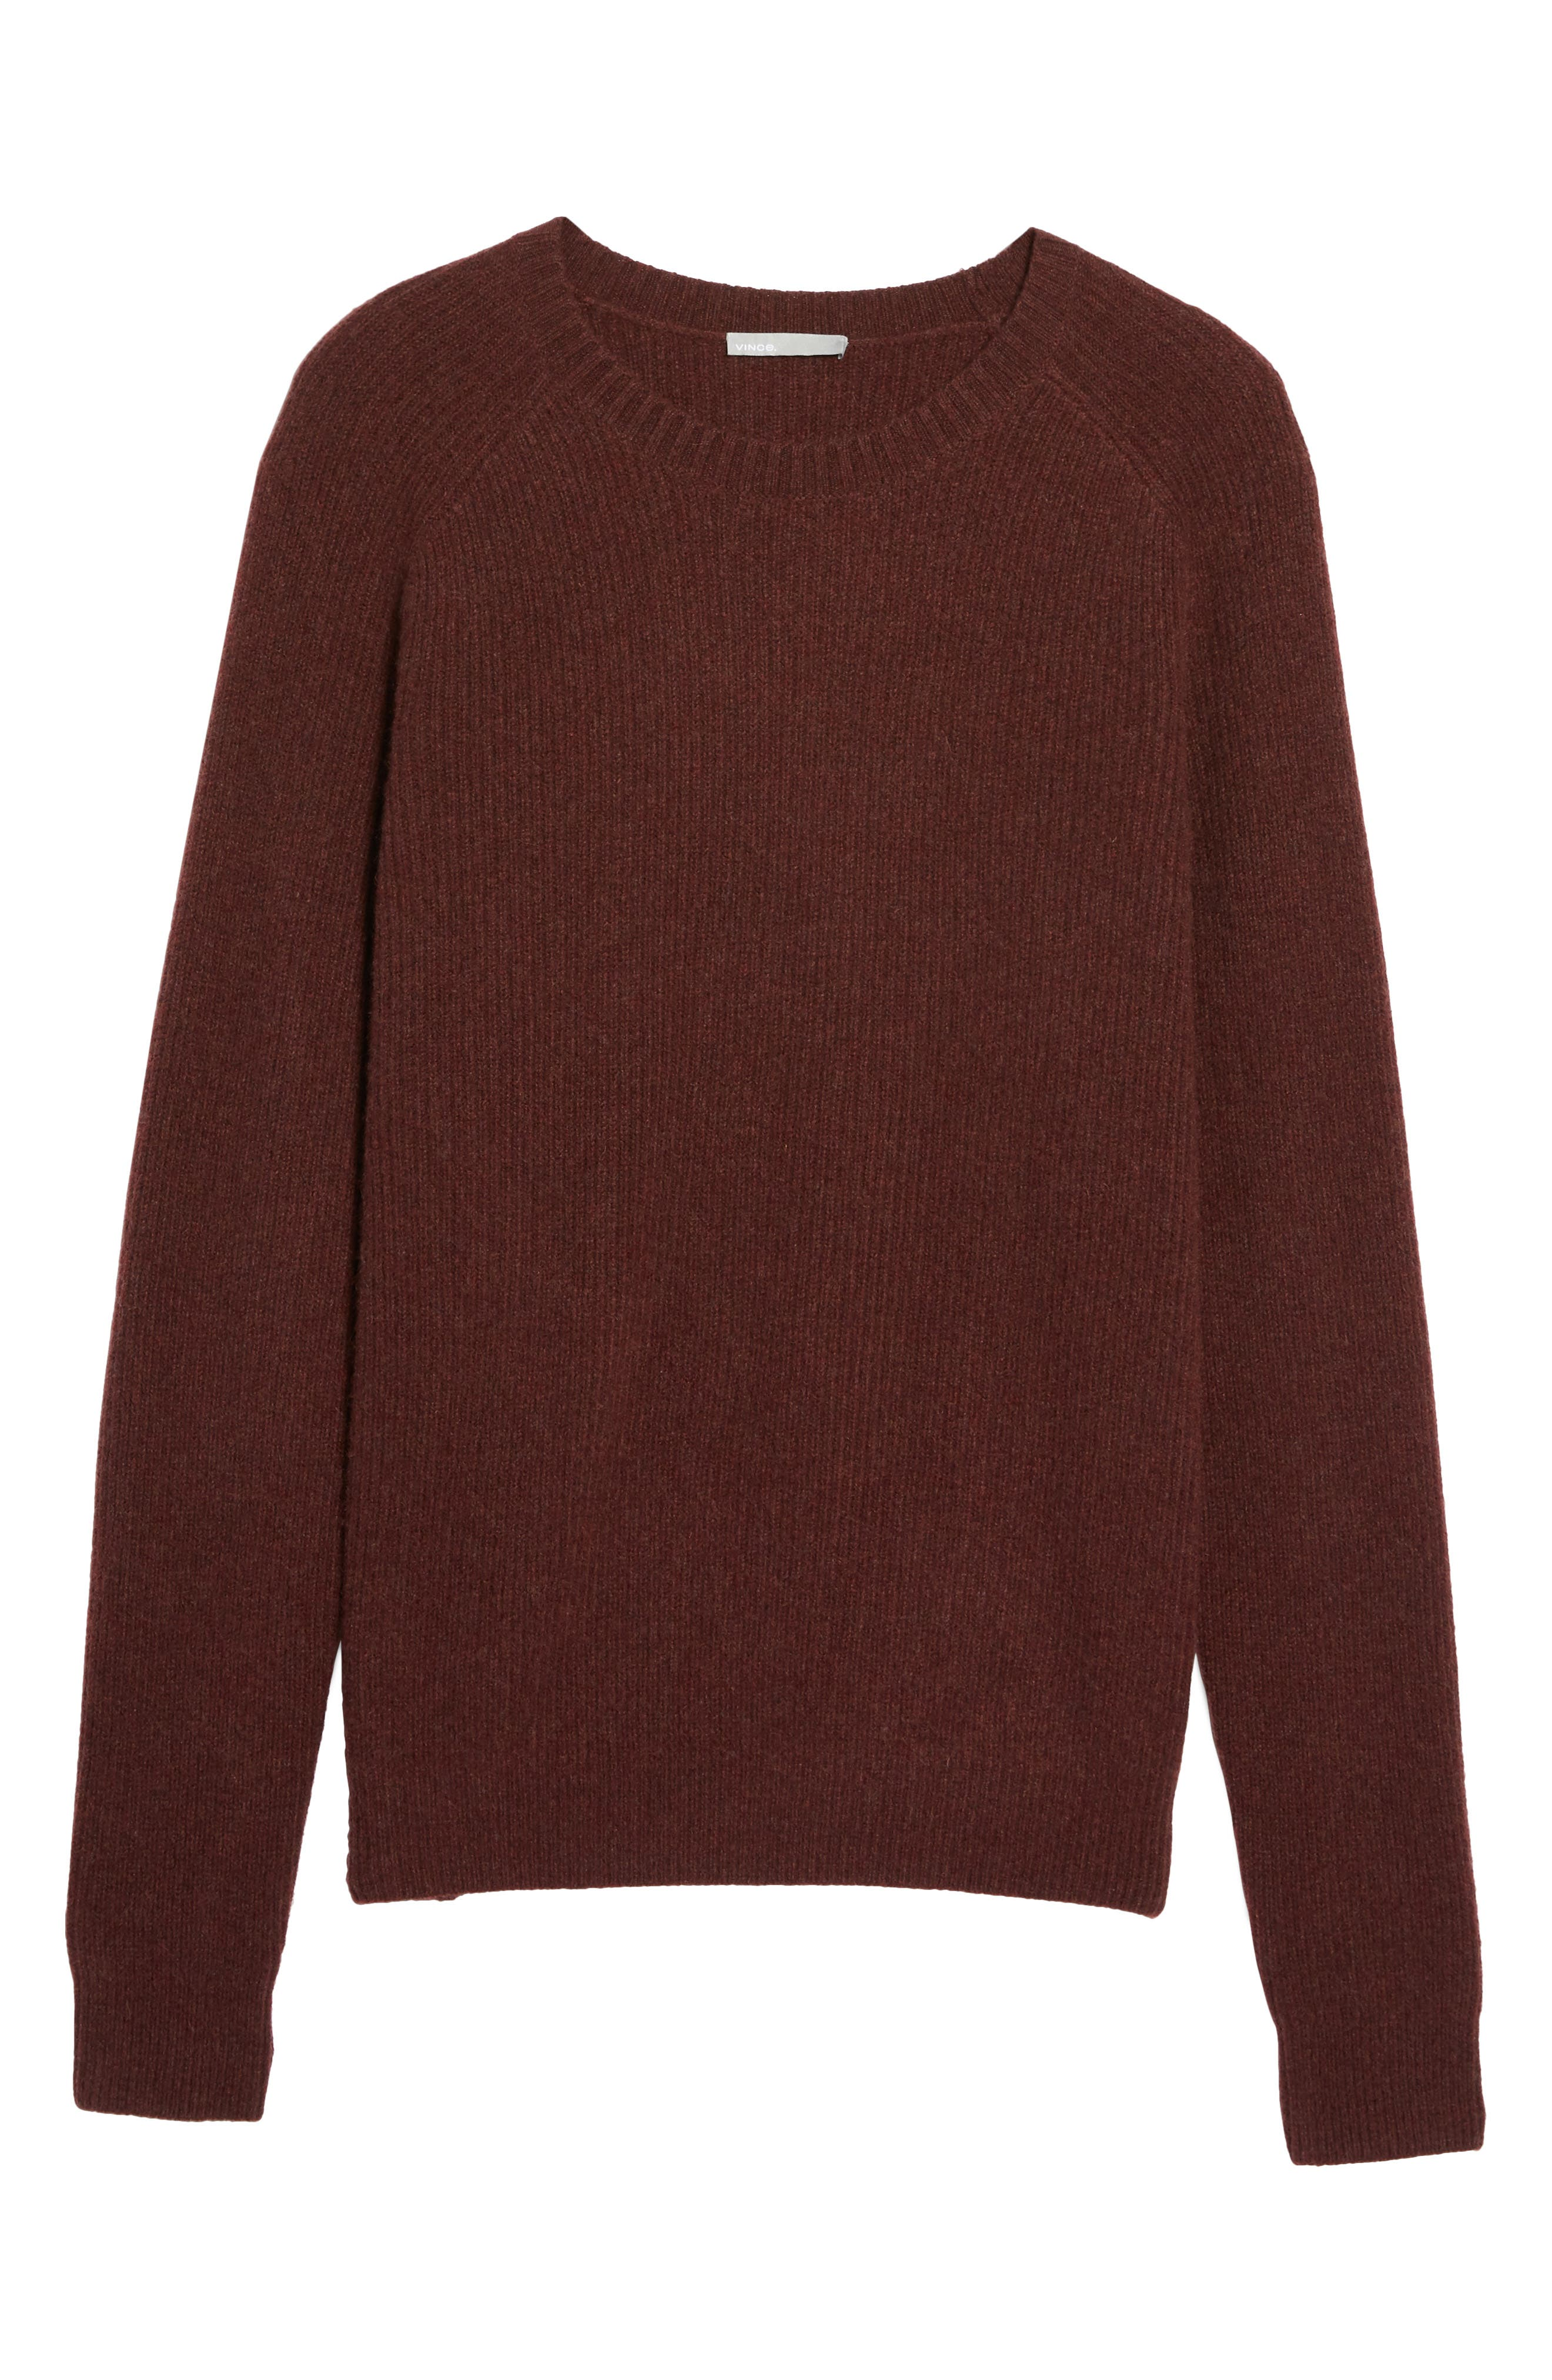 Ribbed Wool & Cashmere Raglan Sweater,                             Alternate thumbnail 24, color,